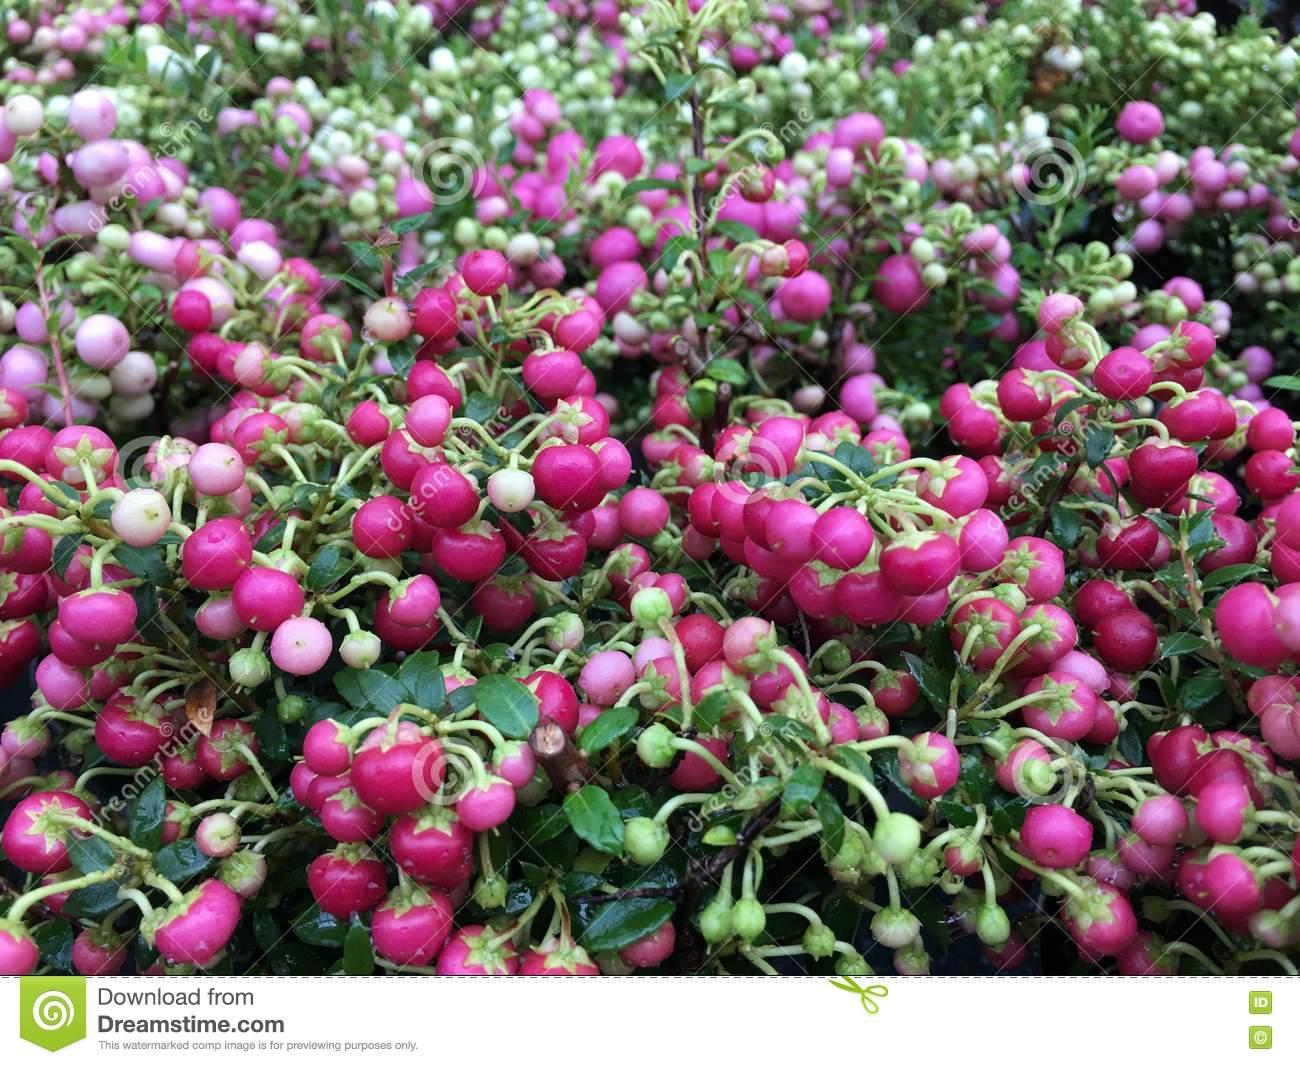 Pernettya Pink.Pernettya Mucronata With Reddish Pink Berries And Green Leaves Stock Image Image Of Winter Berries 76672277